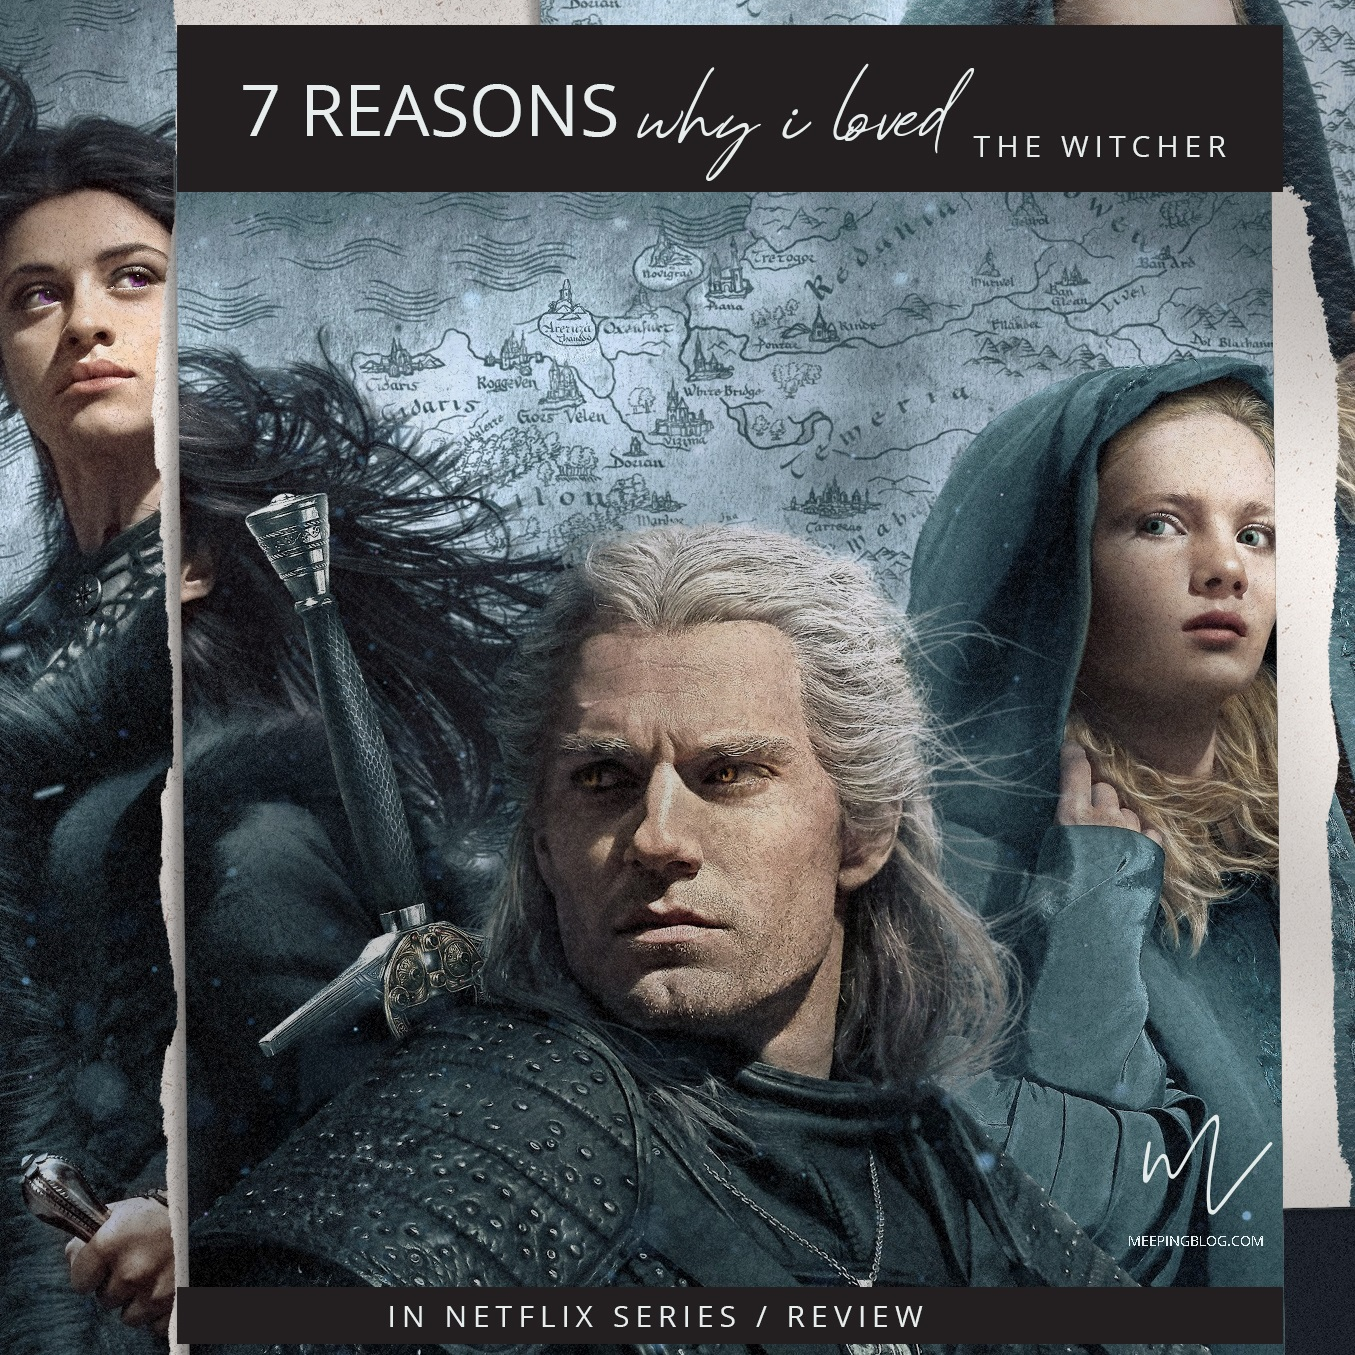 Seven Reasons Why I loved The Witcher